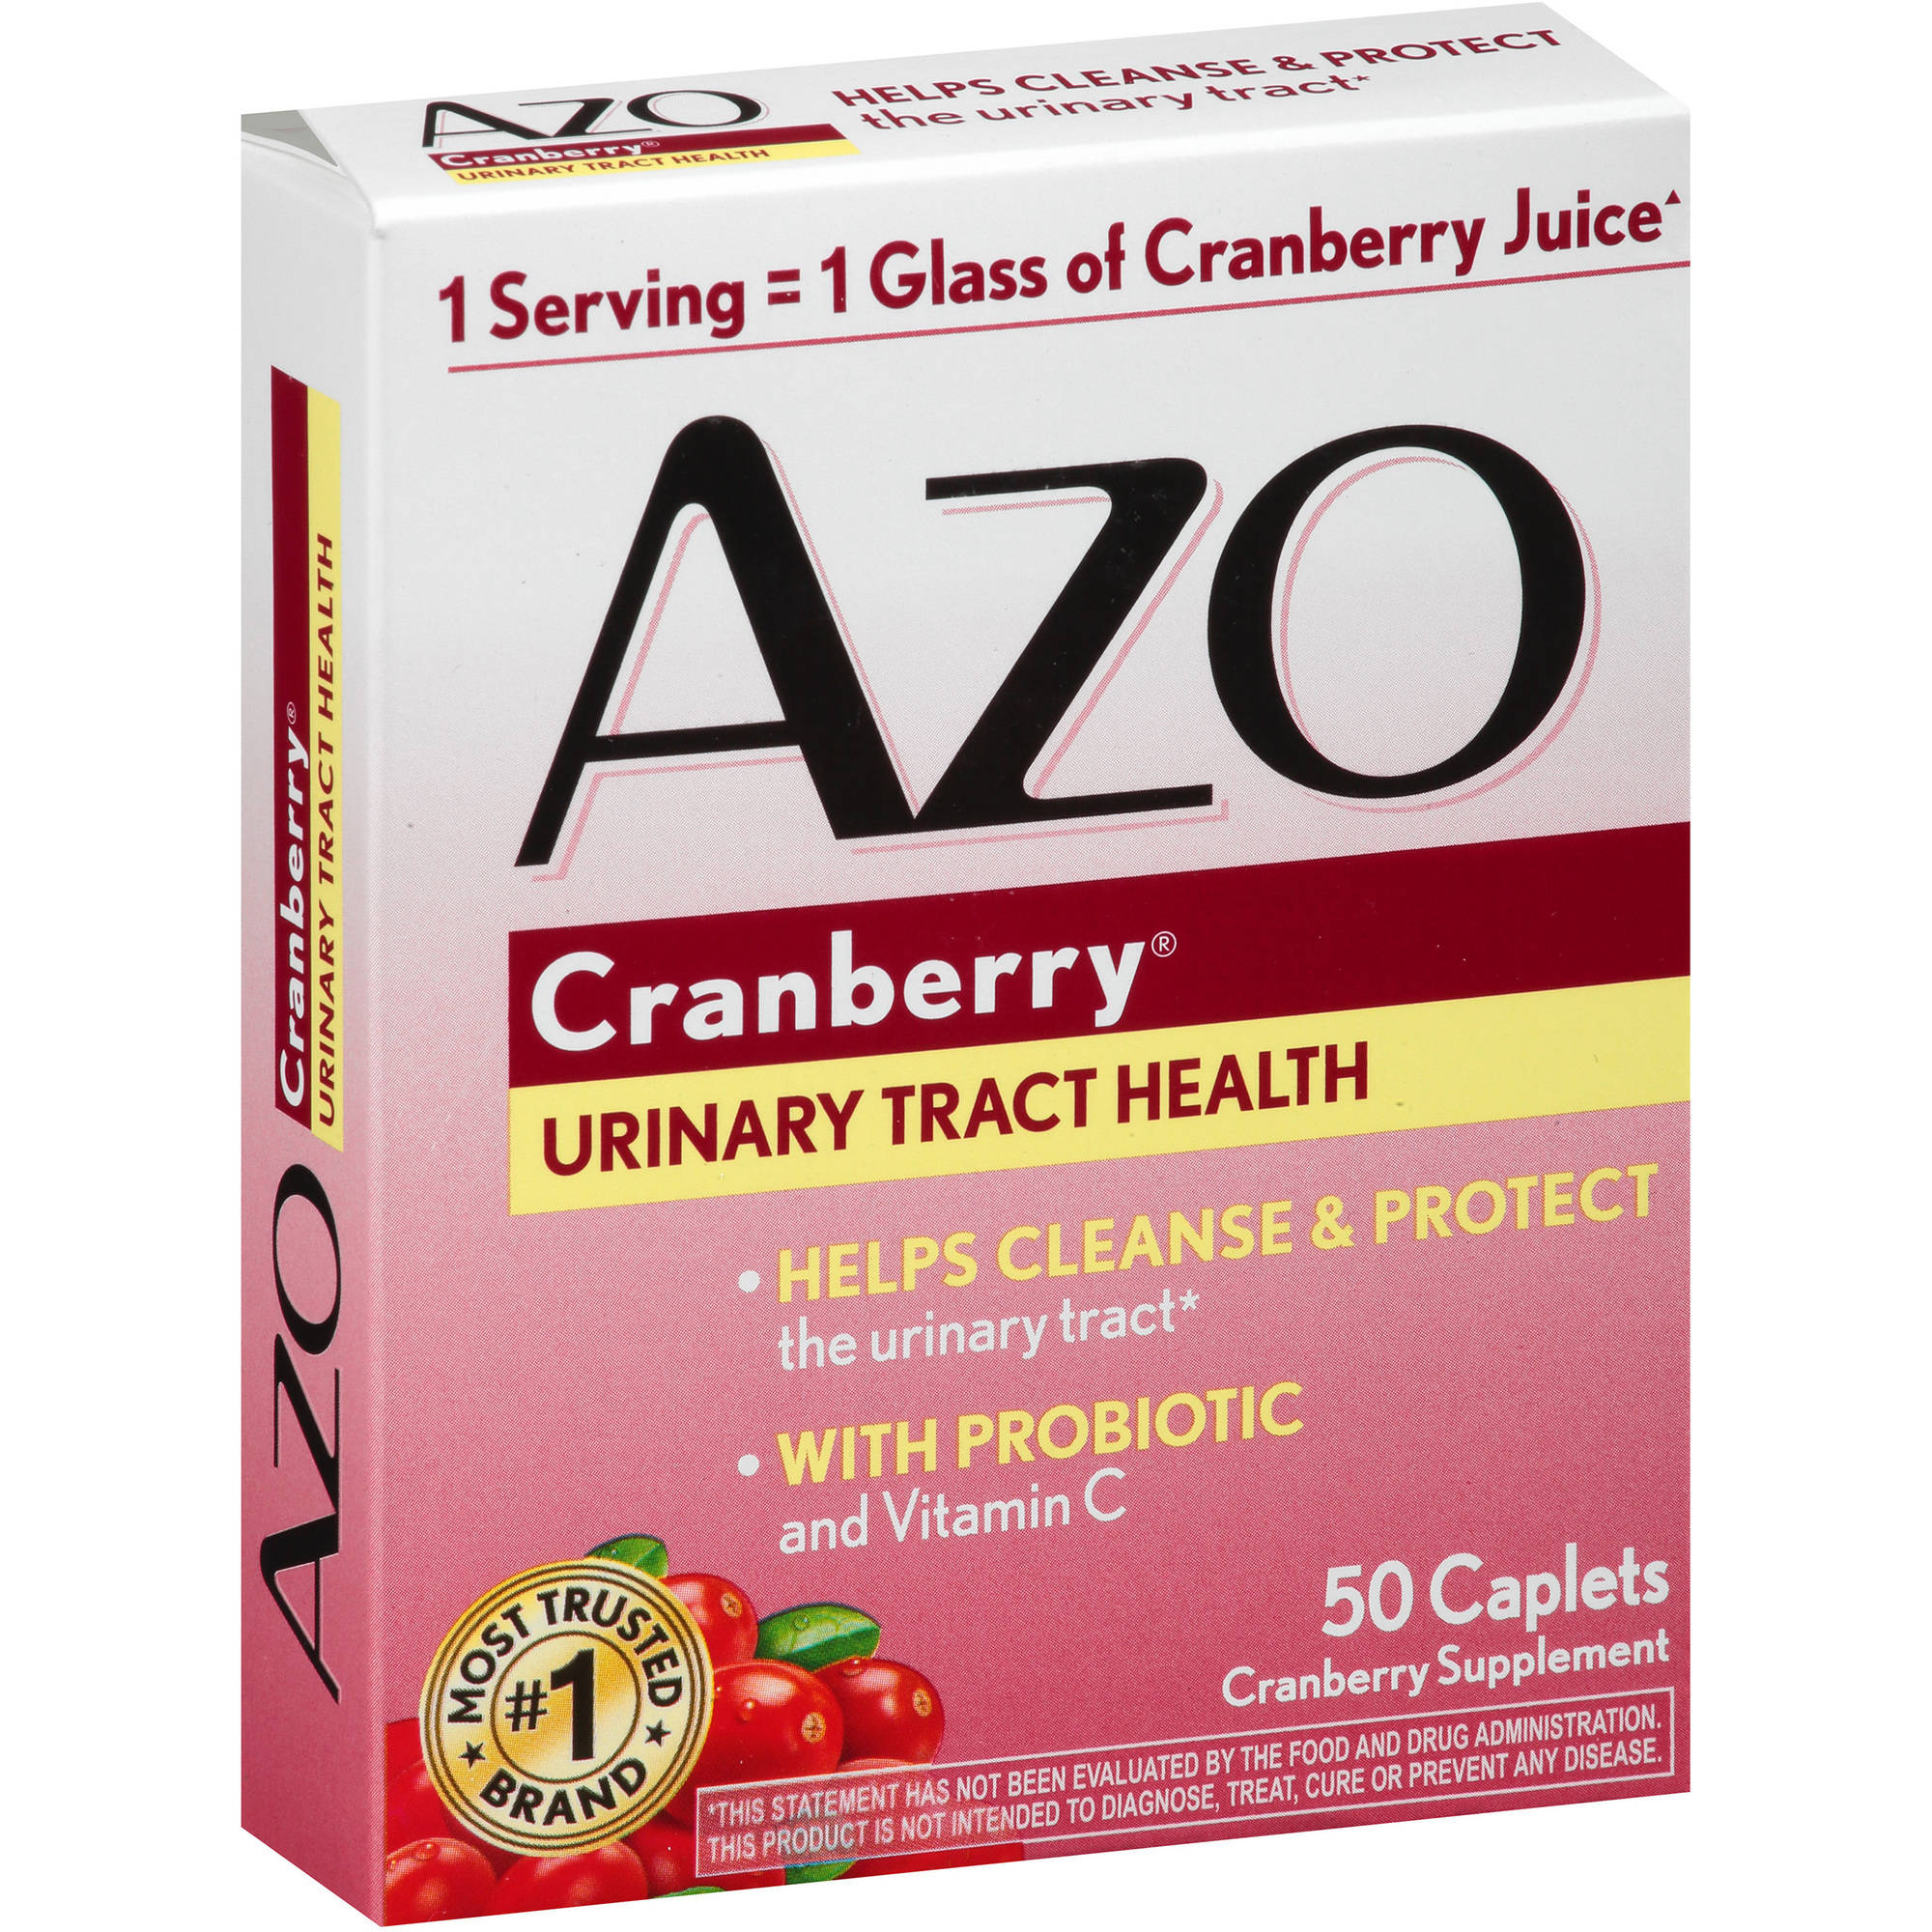 AZO Cranberry Urinary Tract Health Dietary Supplement Caplets, 50 count